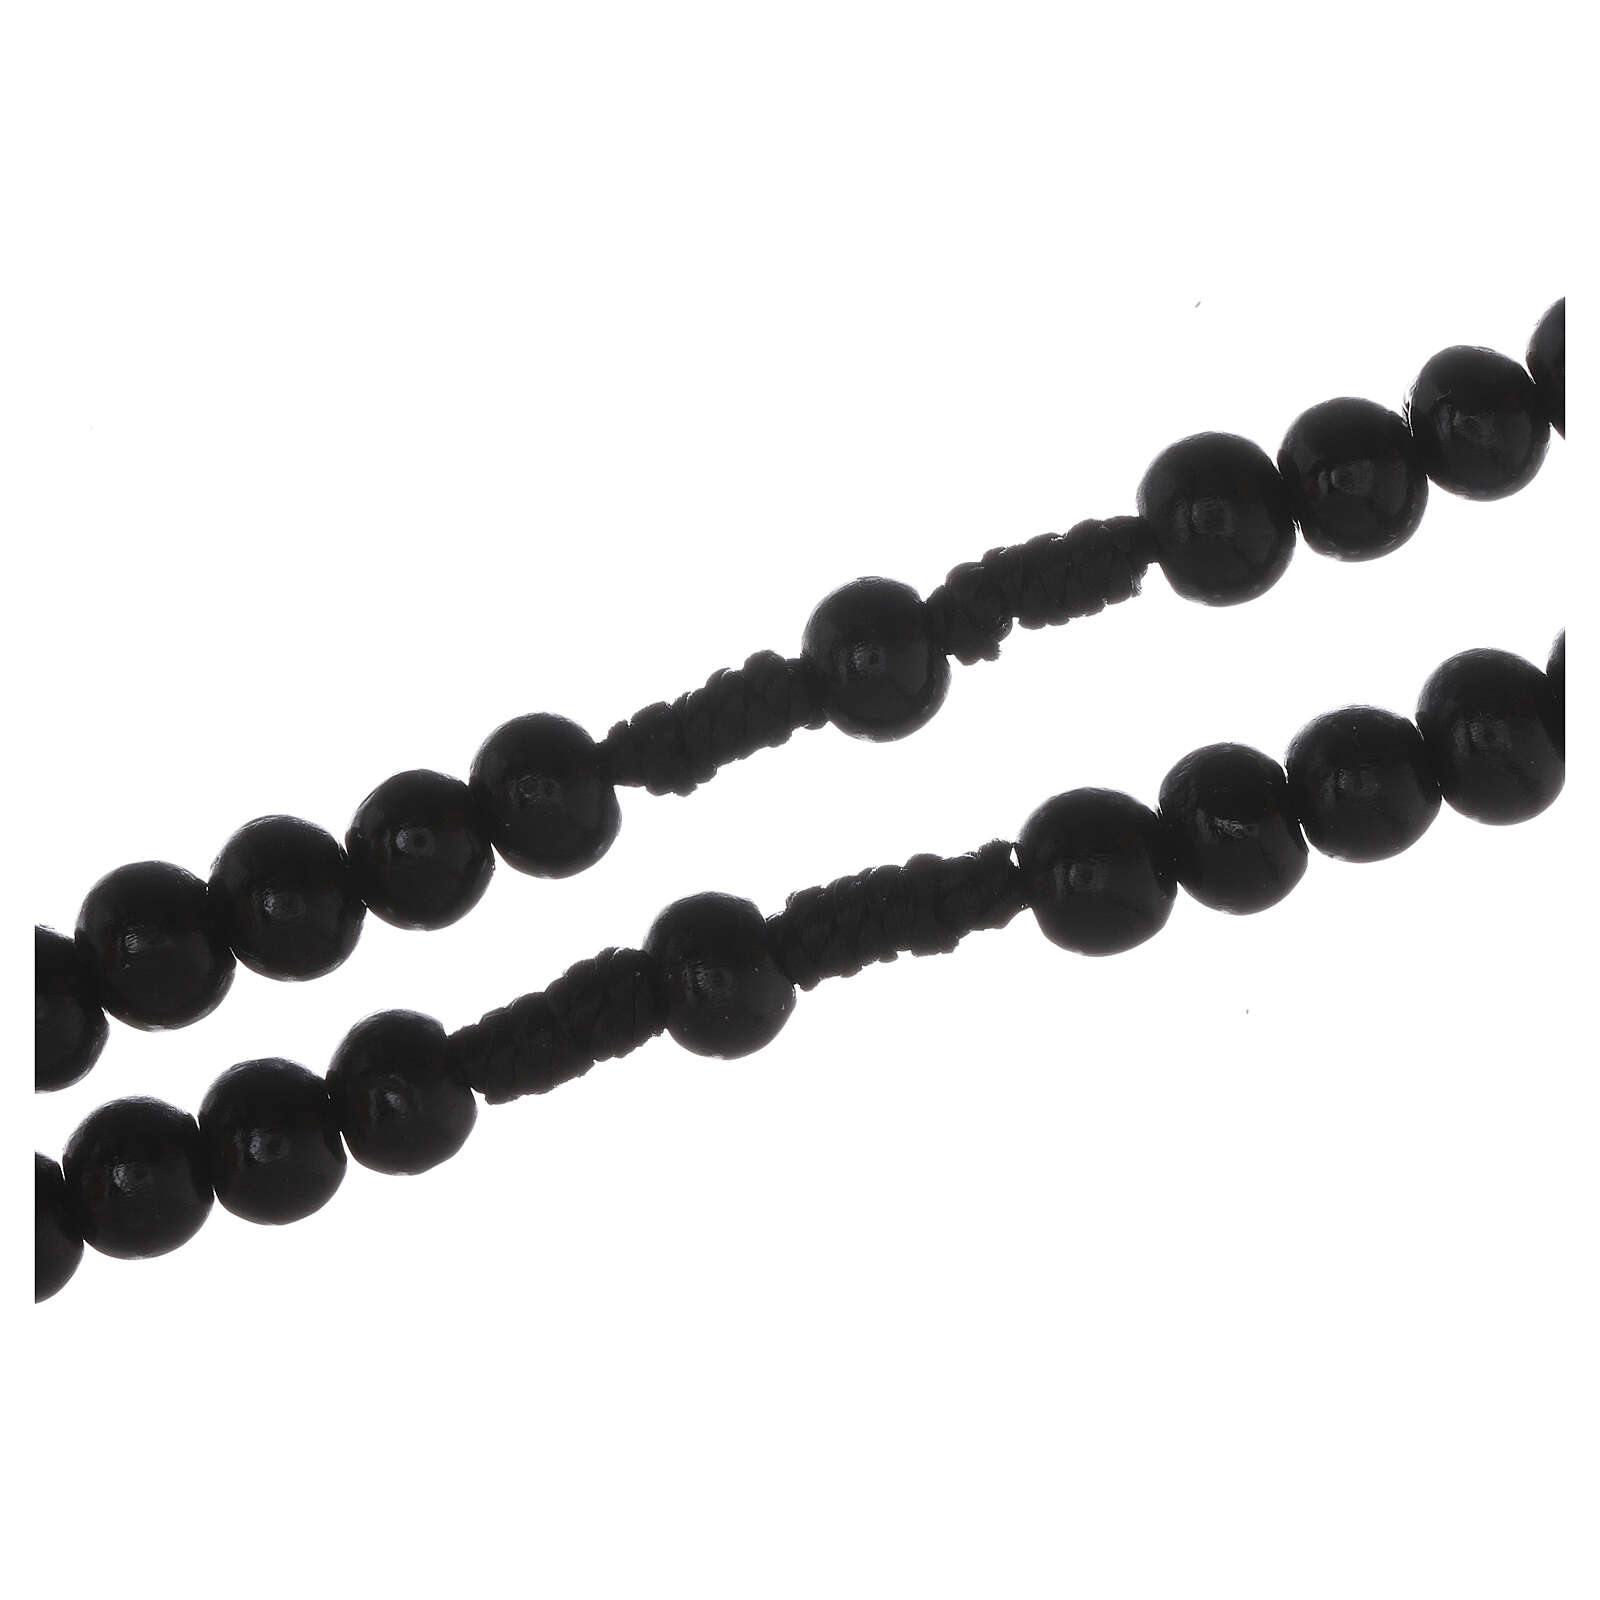 Wooden rosary with silver engraving on a black cross with 7 mm beads 4